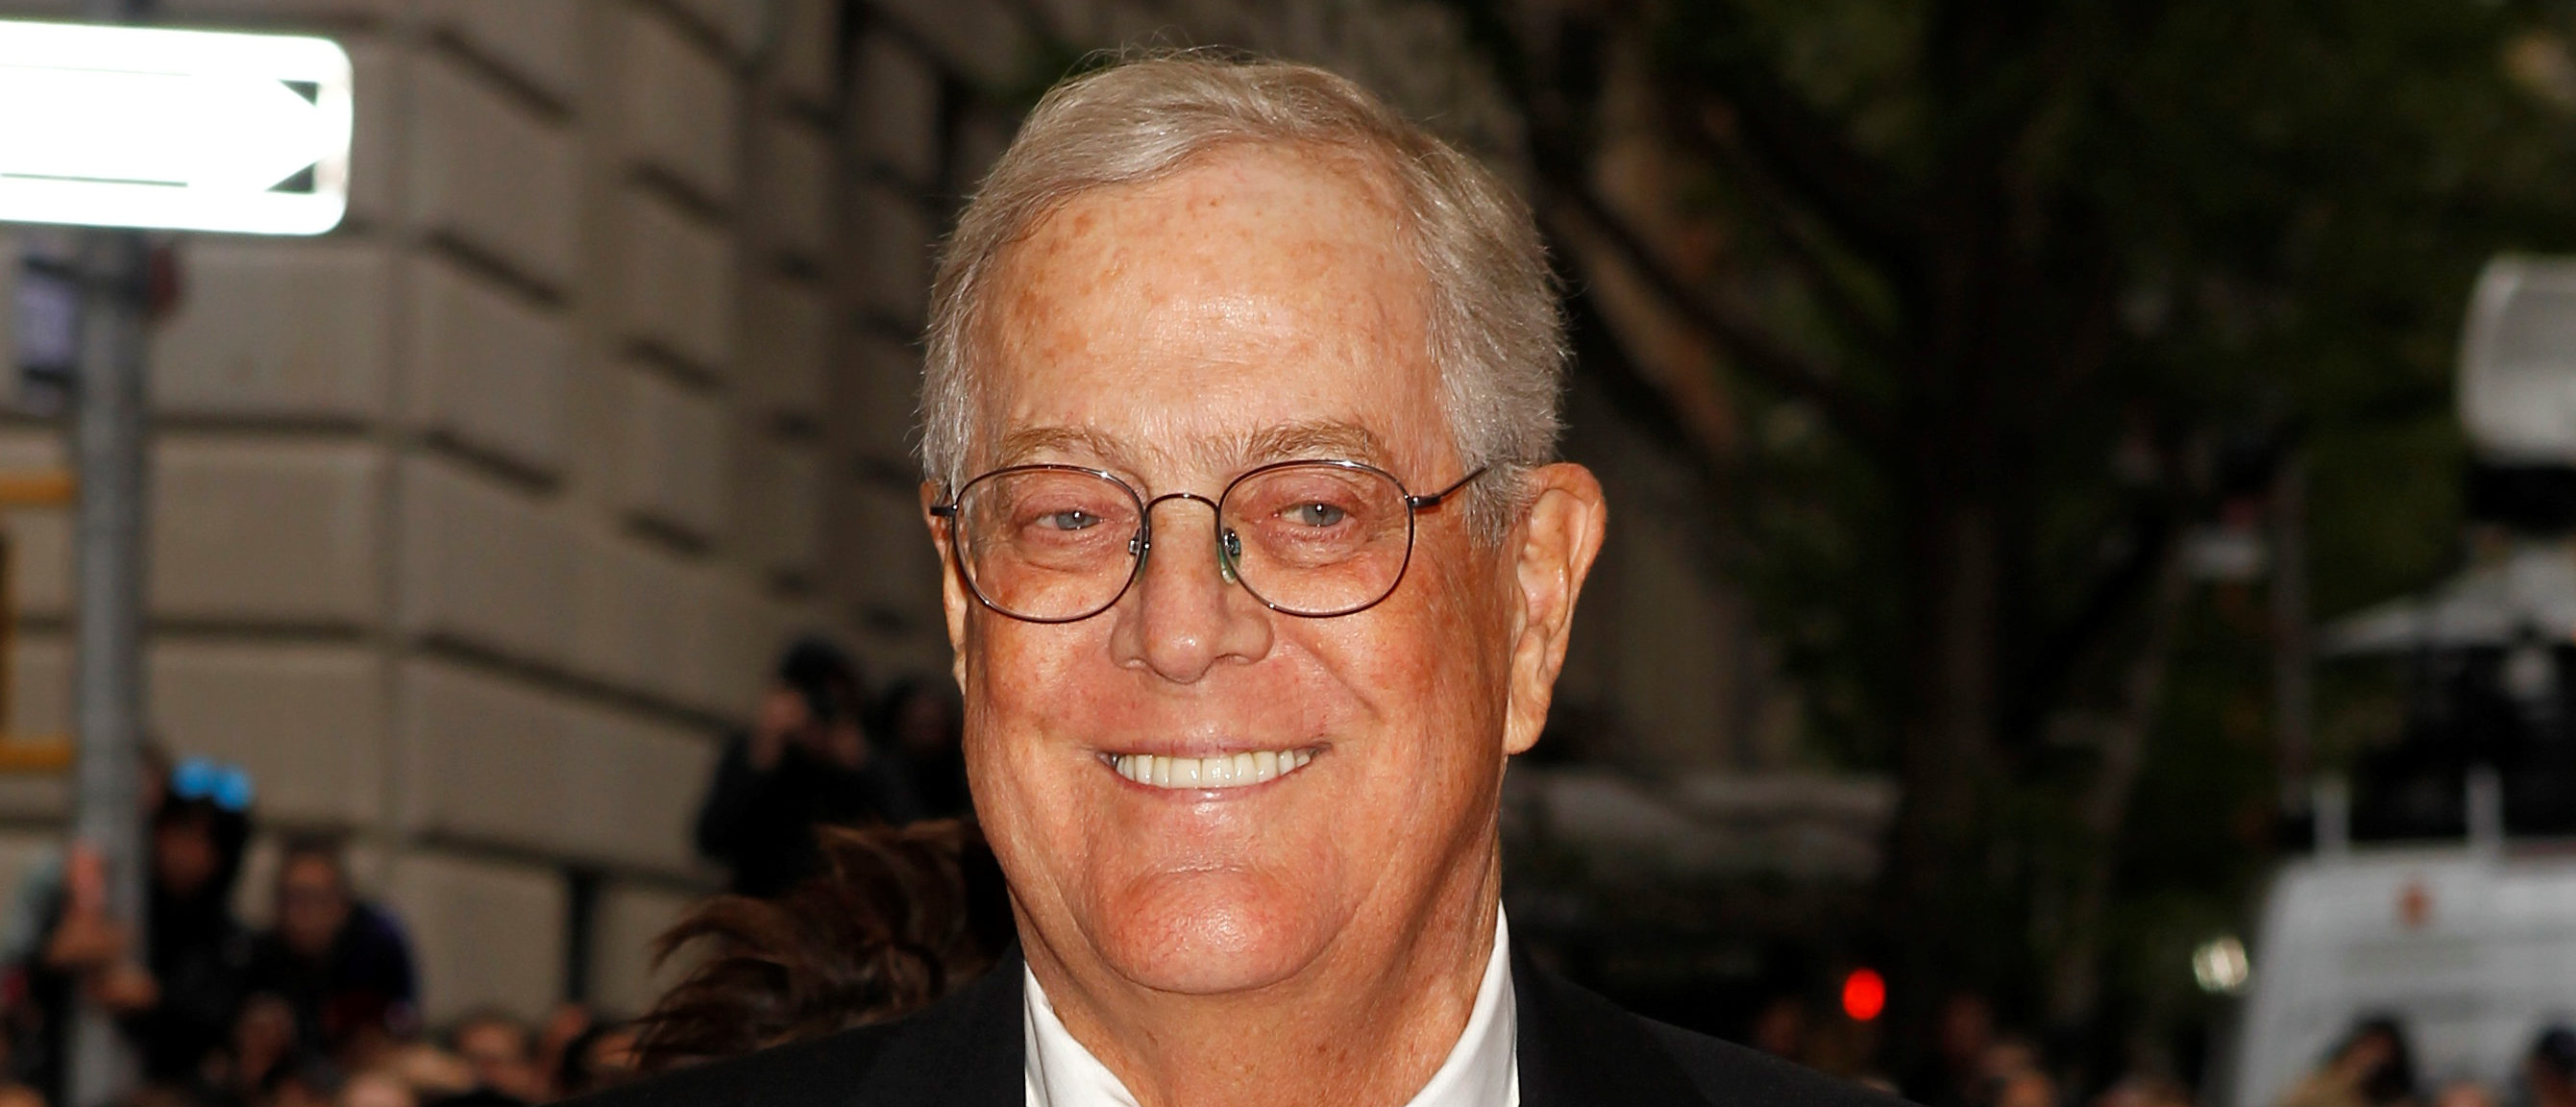 'I Hope You Suffered': People On The Left Celebrate David Koch's Death